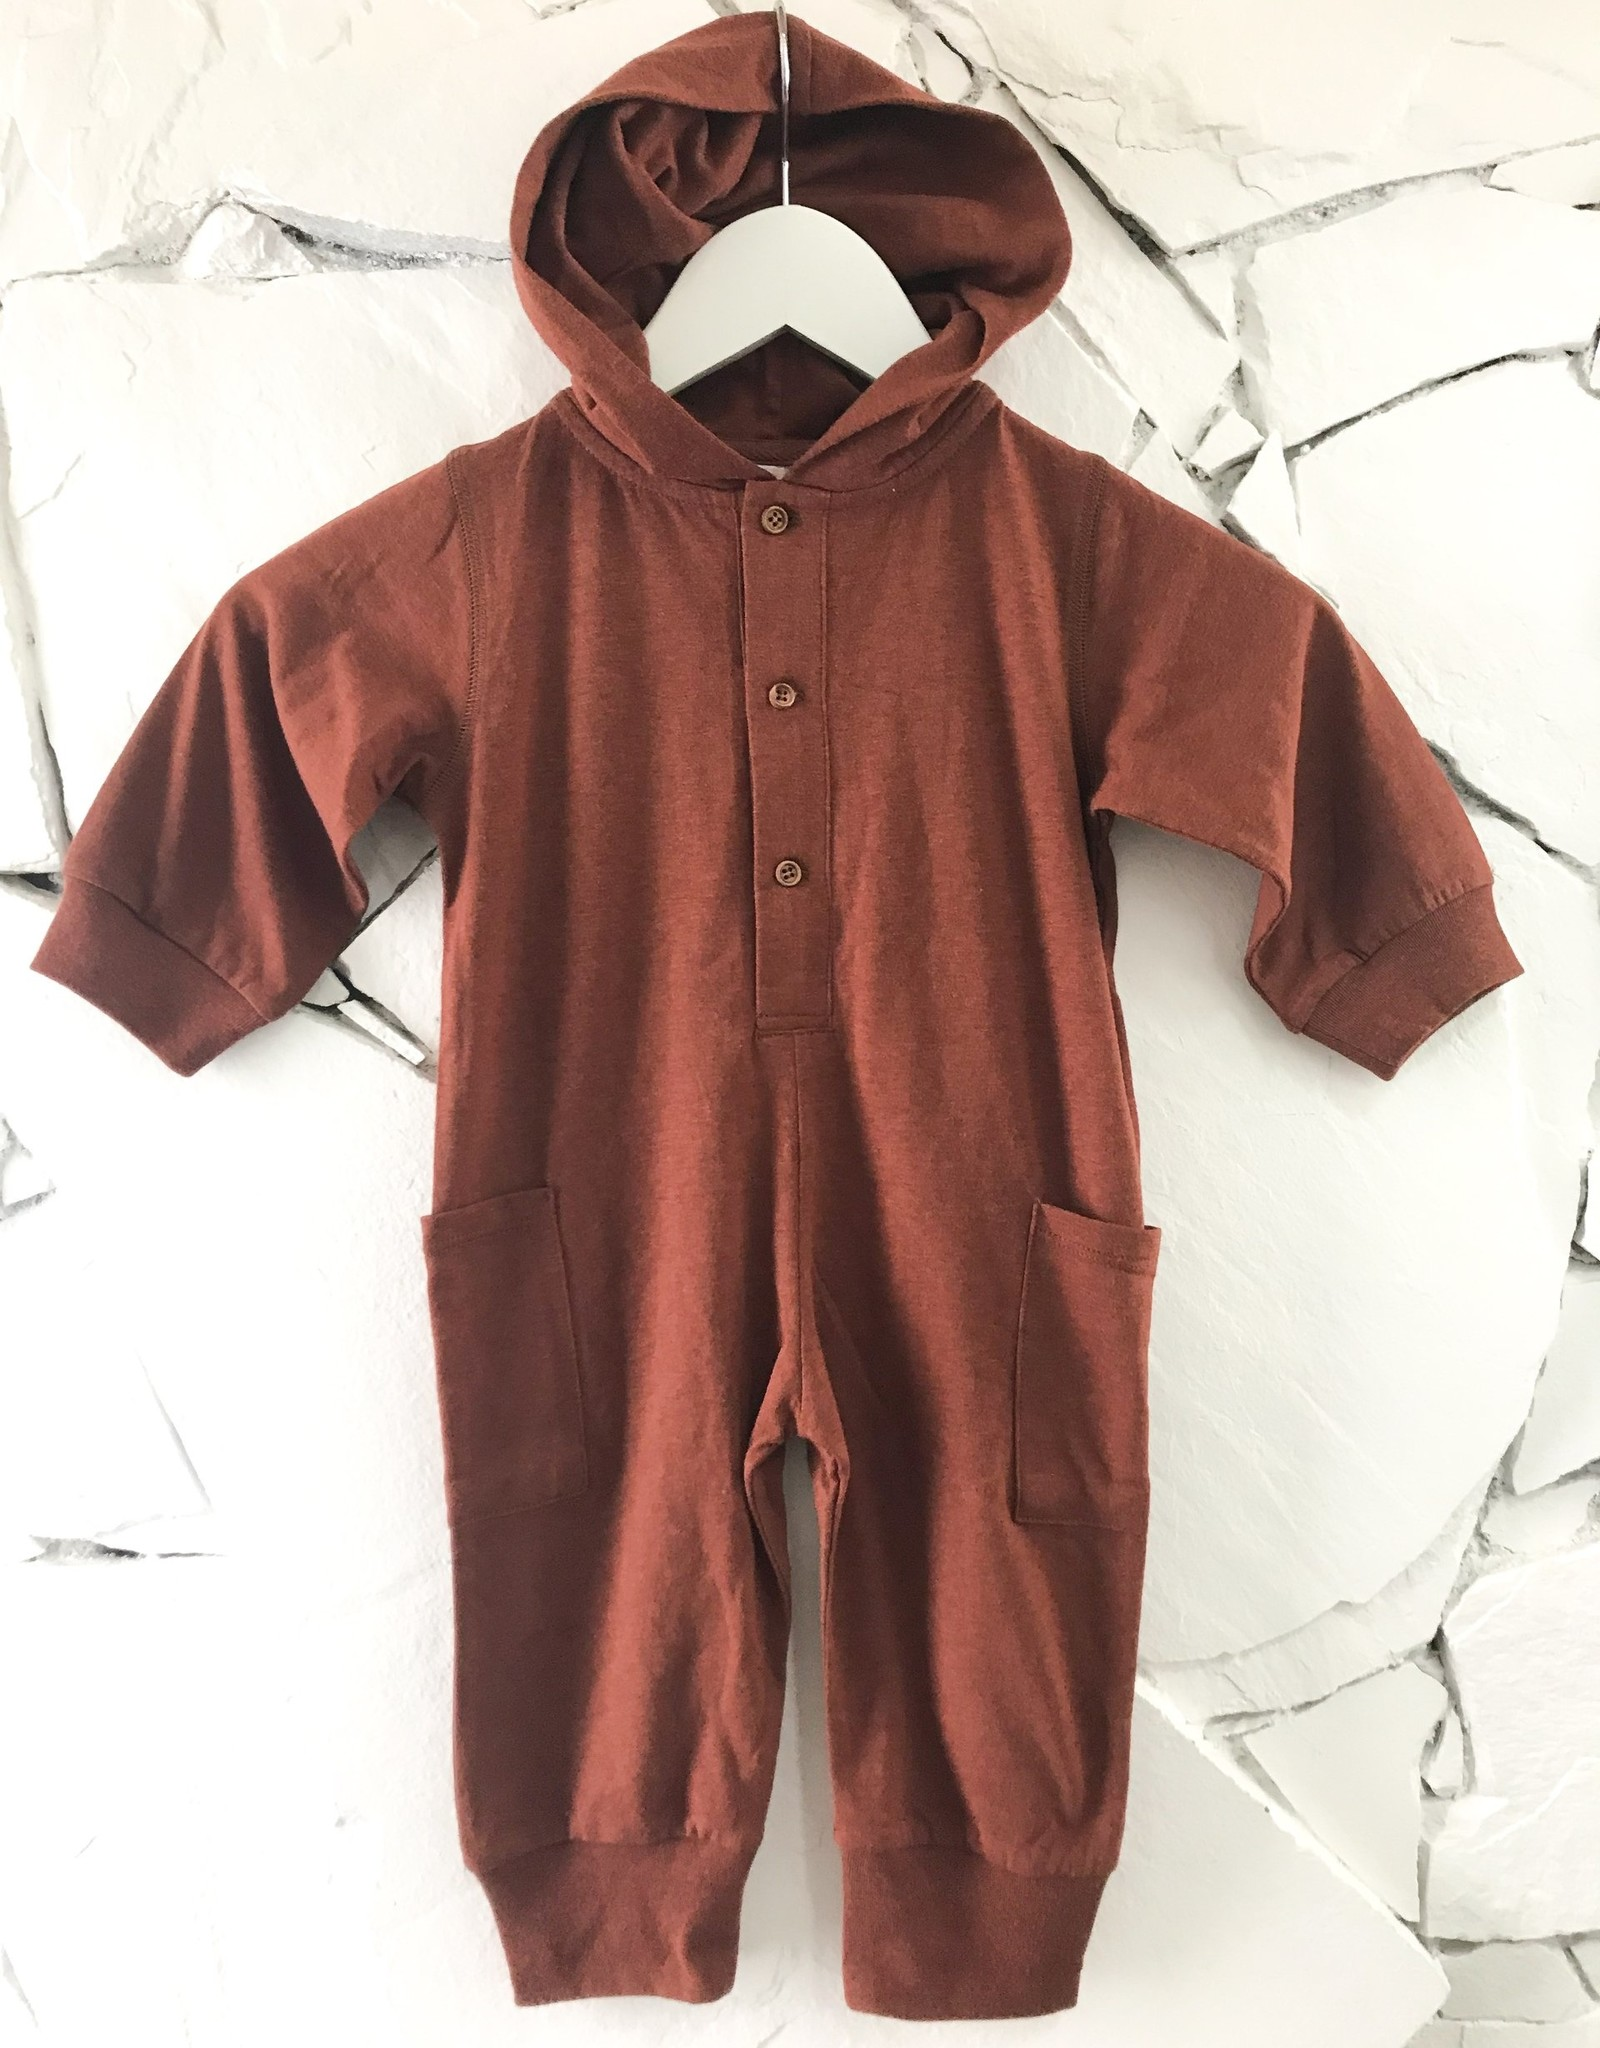 Little Rowe Billy Romper - Grey, Peach, or Cinnamon